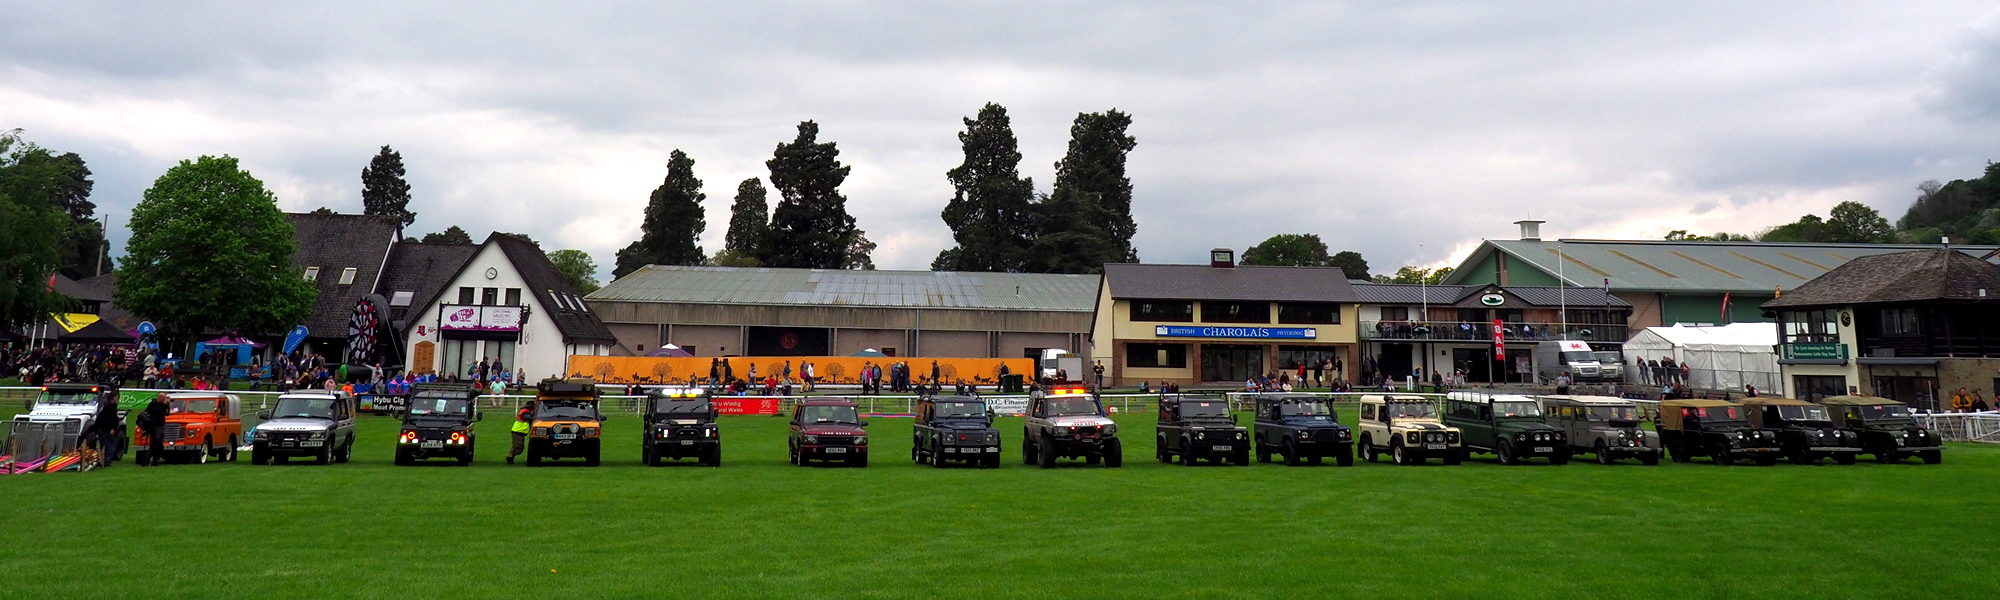 Welsh Festival of Land Rovers